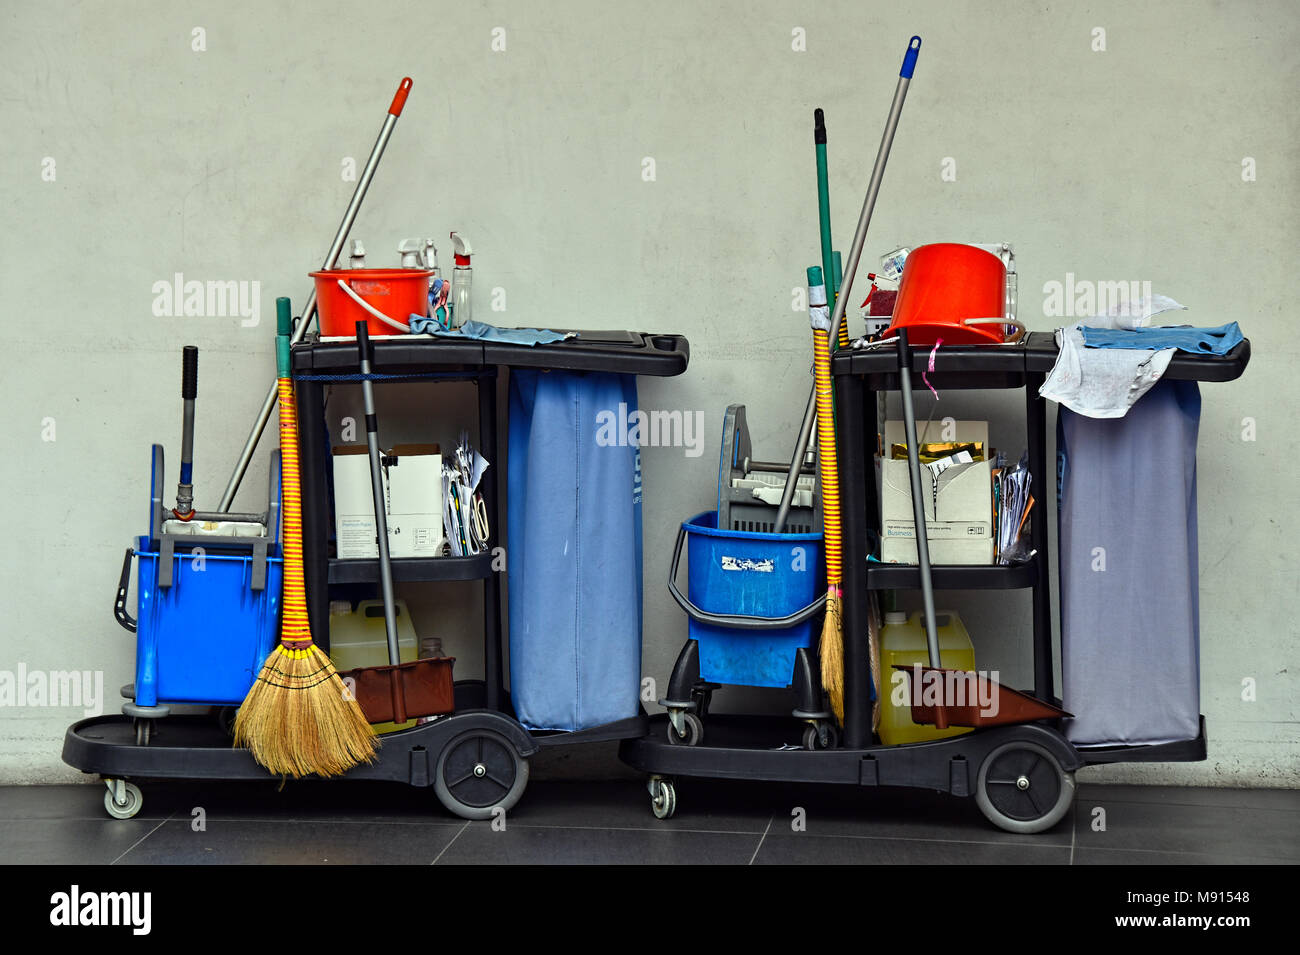 Cleaning Implements - Stock Image